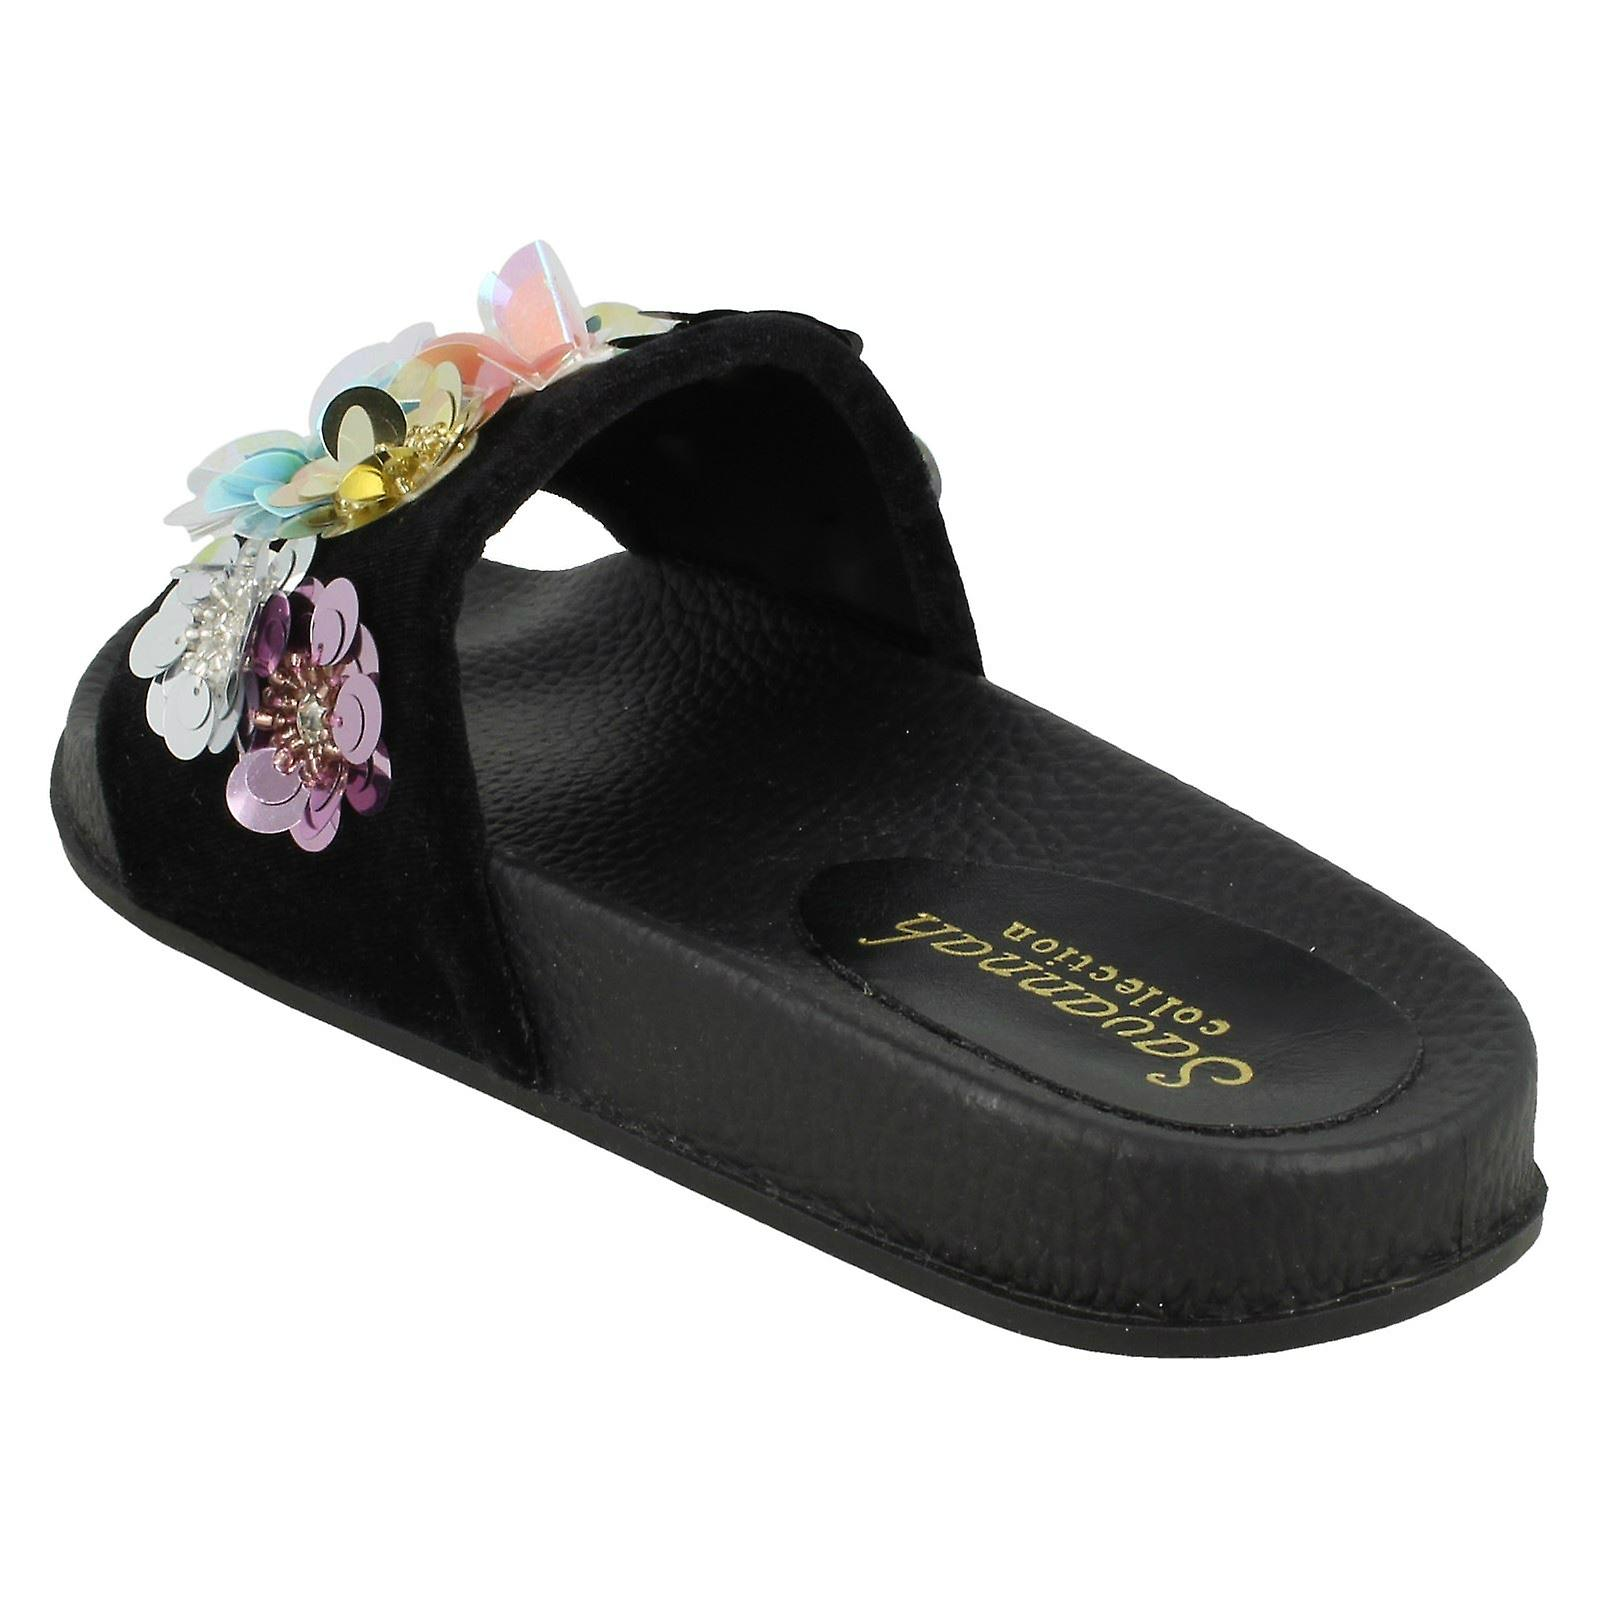 F00135 3 Ladies Black Size 5 Size Mules Sequin UK EU Slider 36 Flower Size Textile Savannah US wqYxvqpX